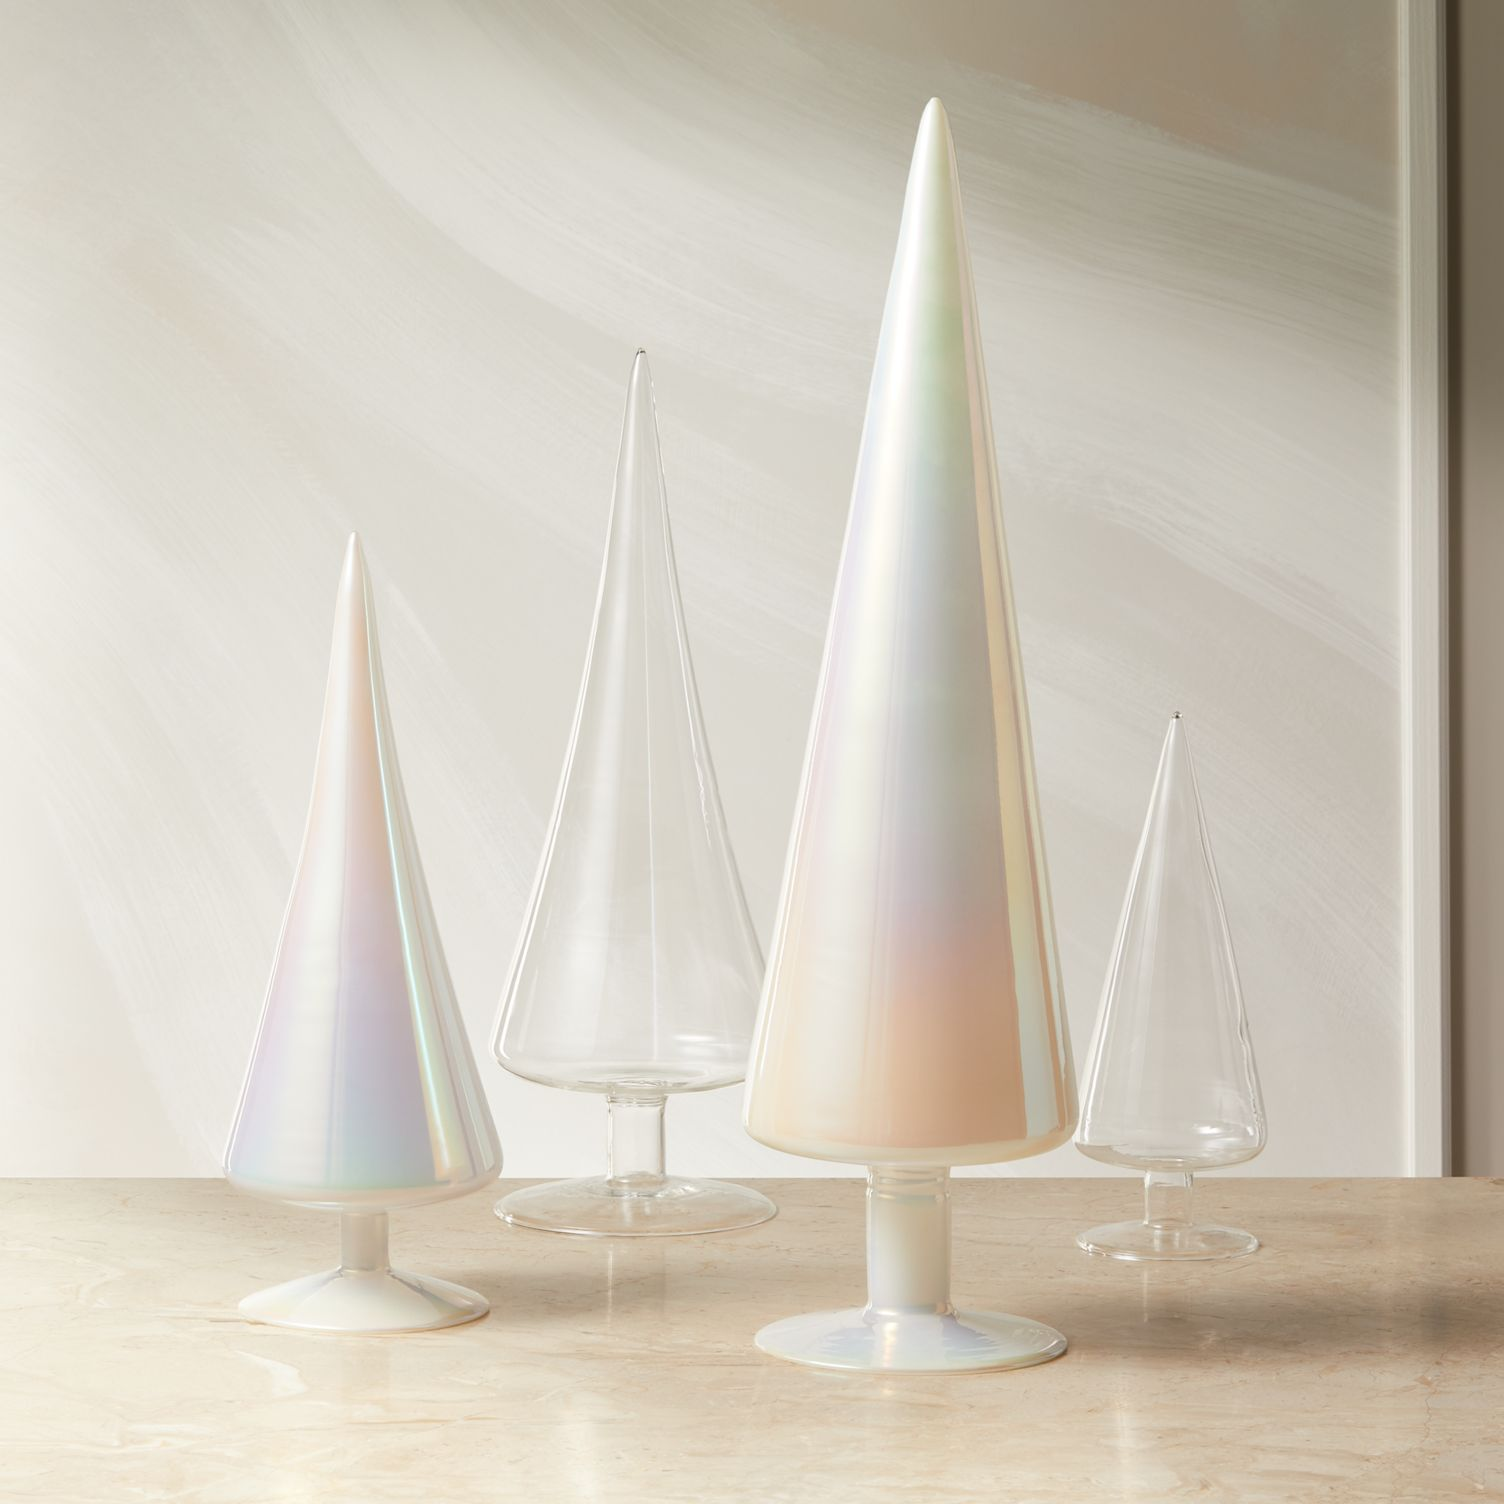 Iridescent modern Christmas trees